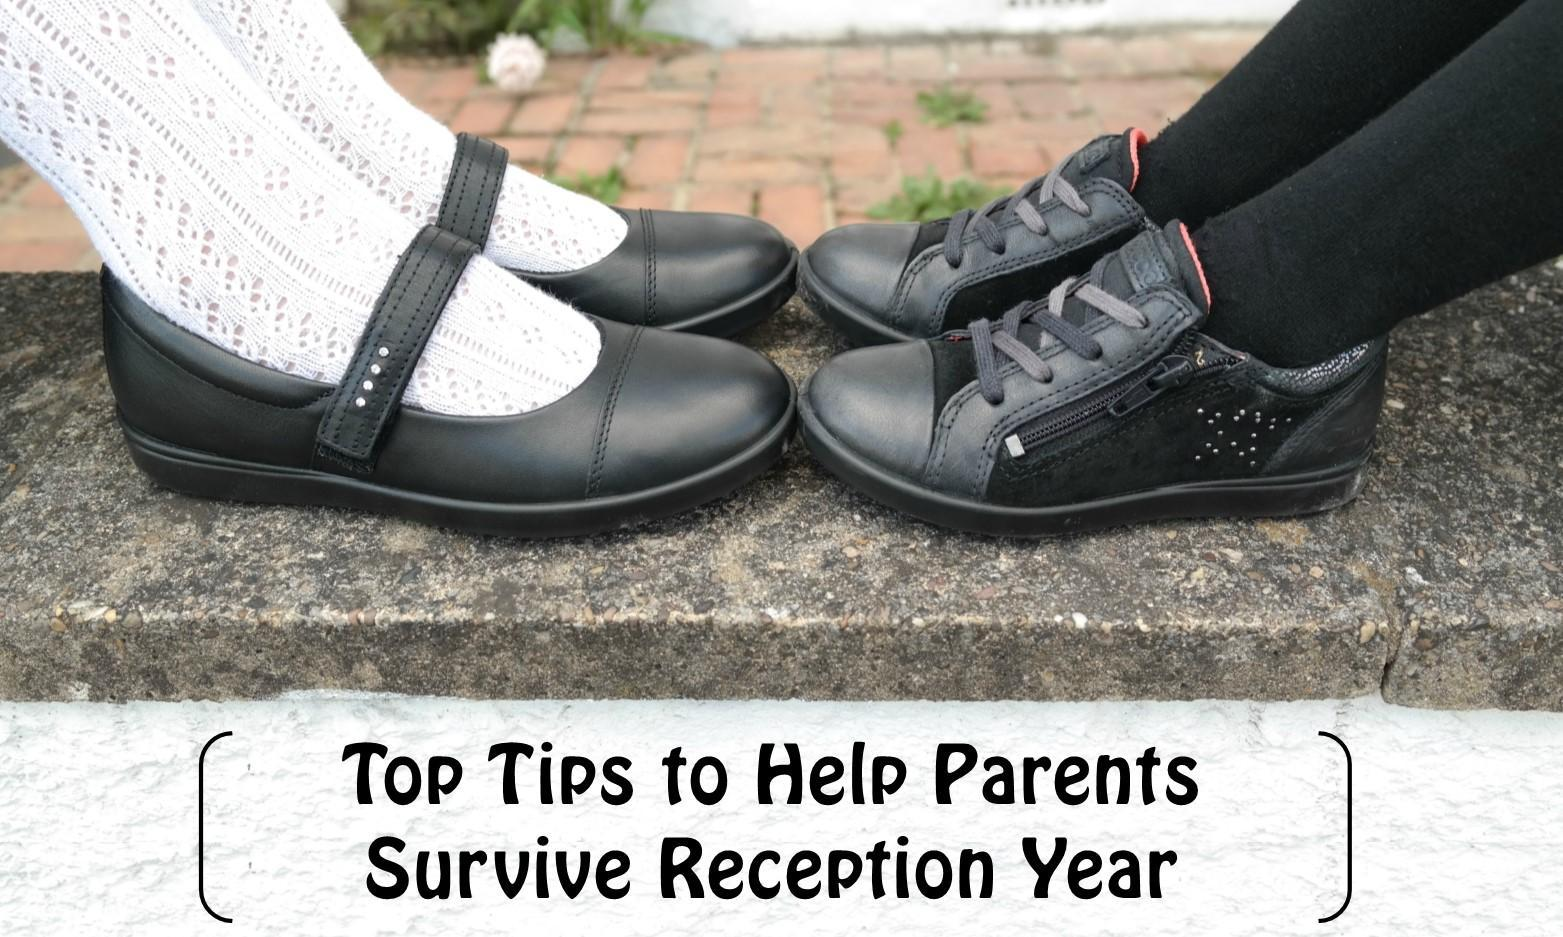 Top Tips to Help Parents Survive Reception Year